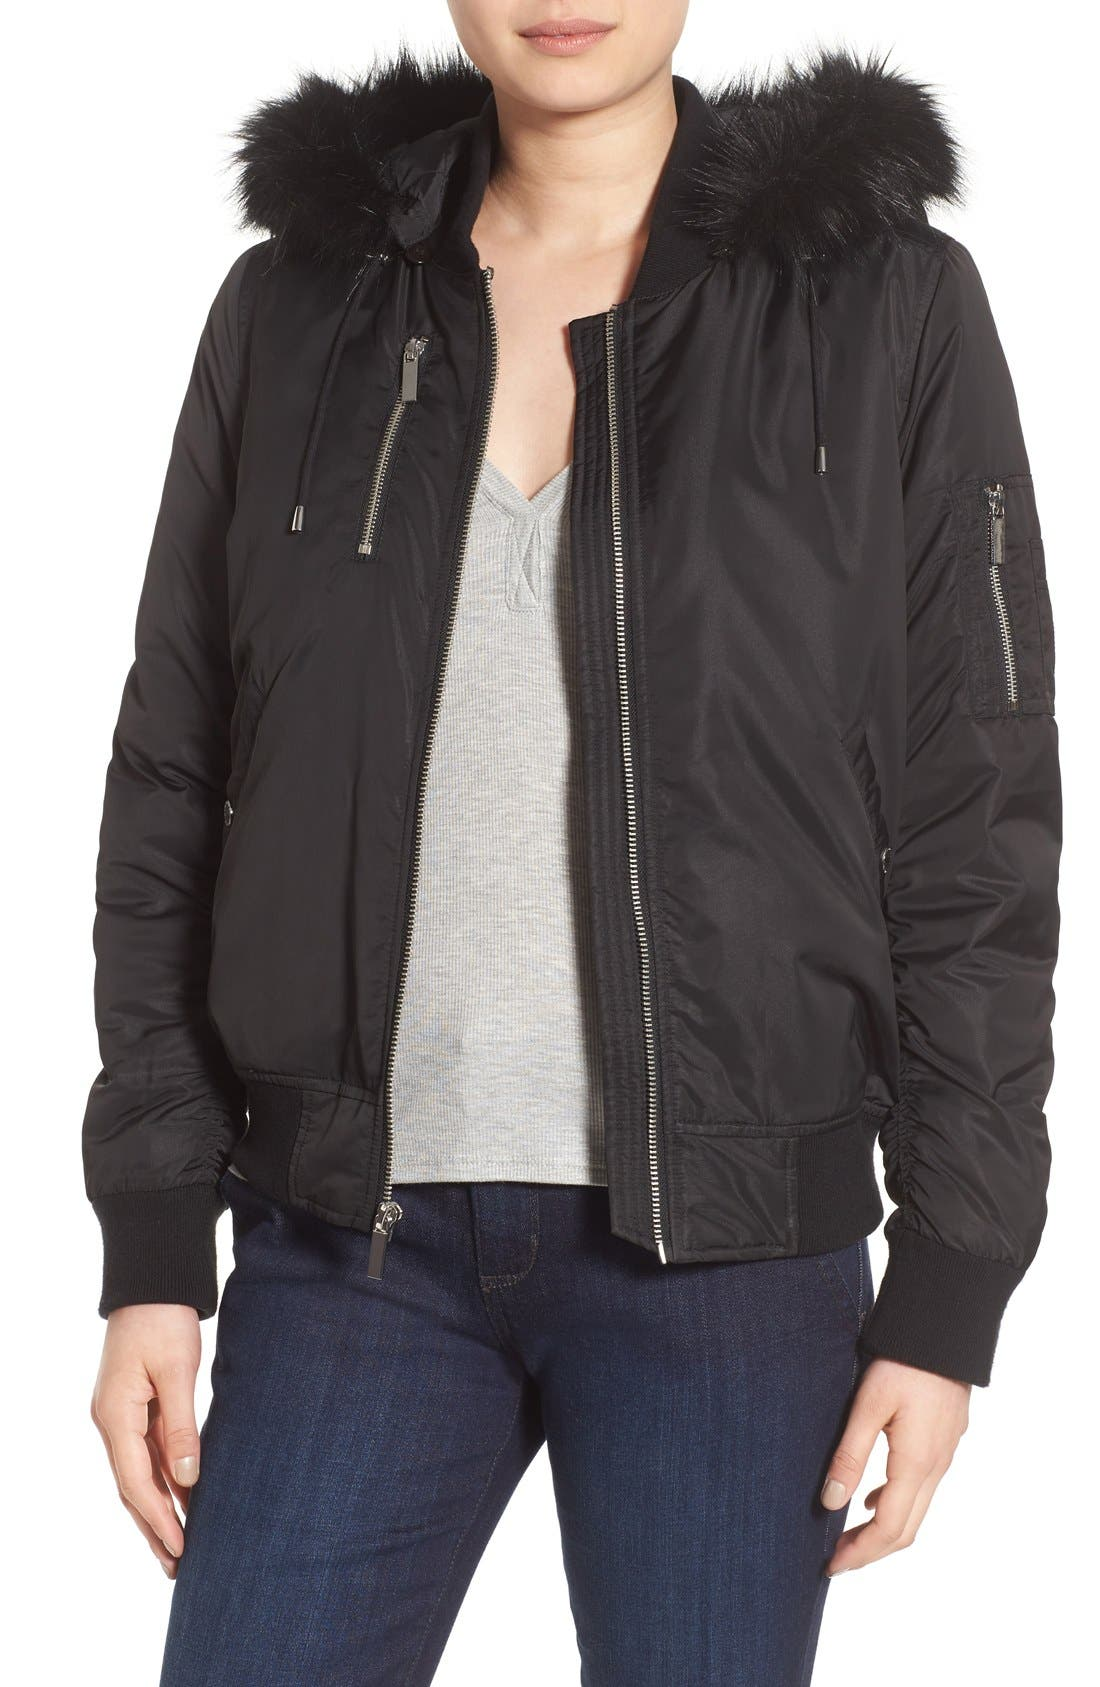 Main Image - French Connection 'Varsity' Hooded Bomber Jacket with Faux Fur Trim